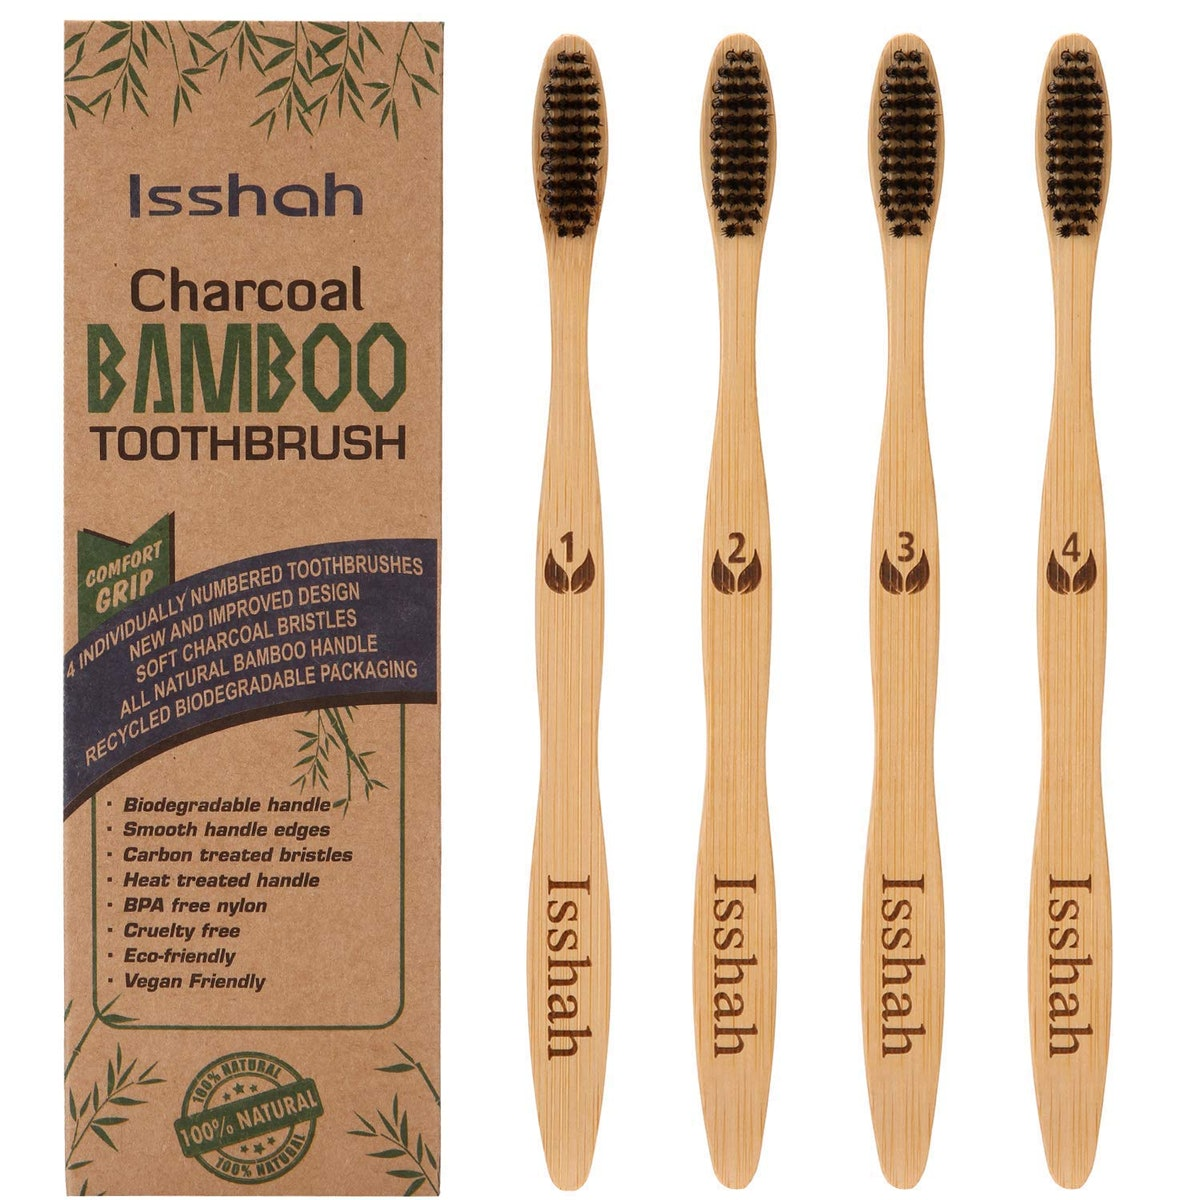 Isshah Charcoal Toothbrush (4 Pack)